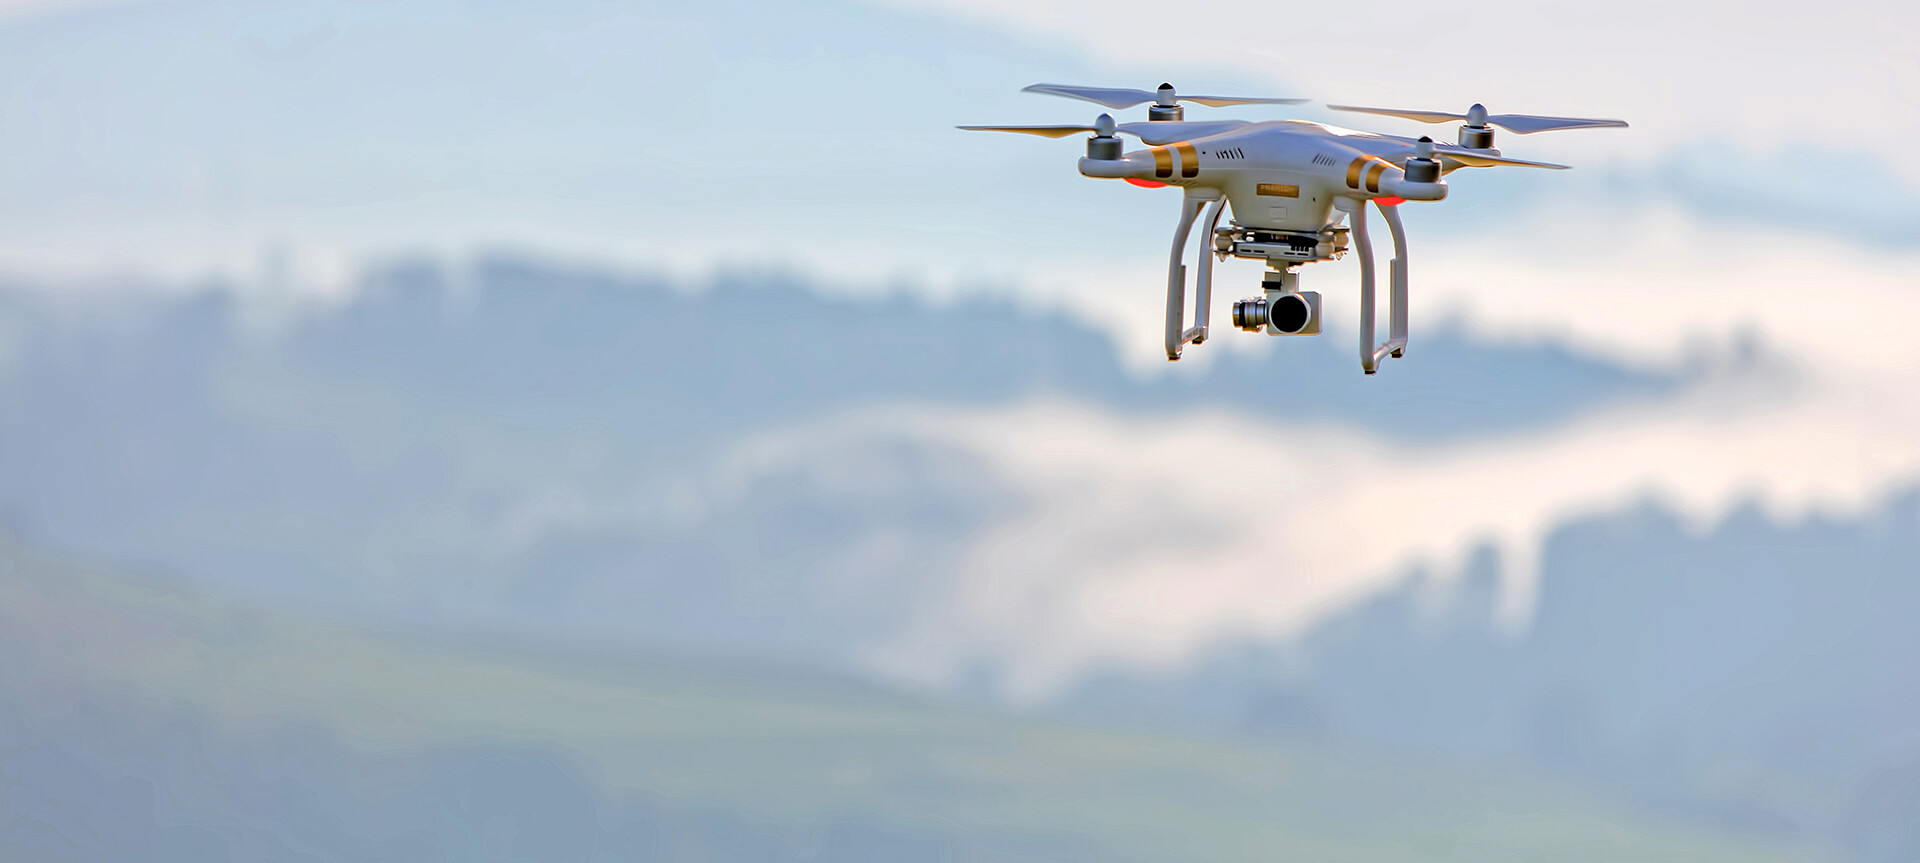 AUV | Drones The Future of Surveying